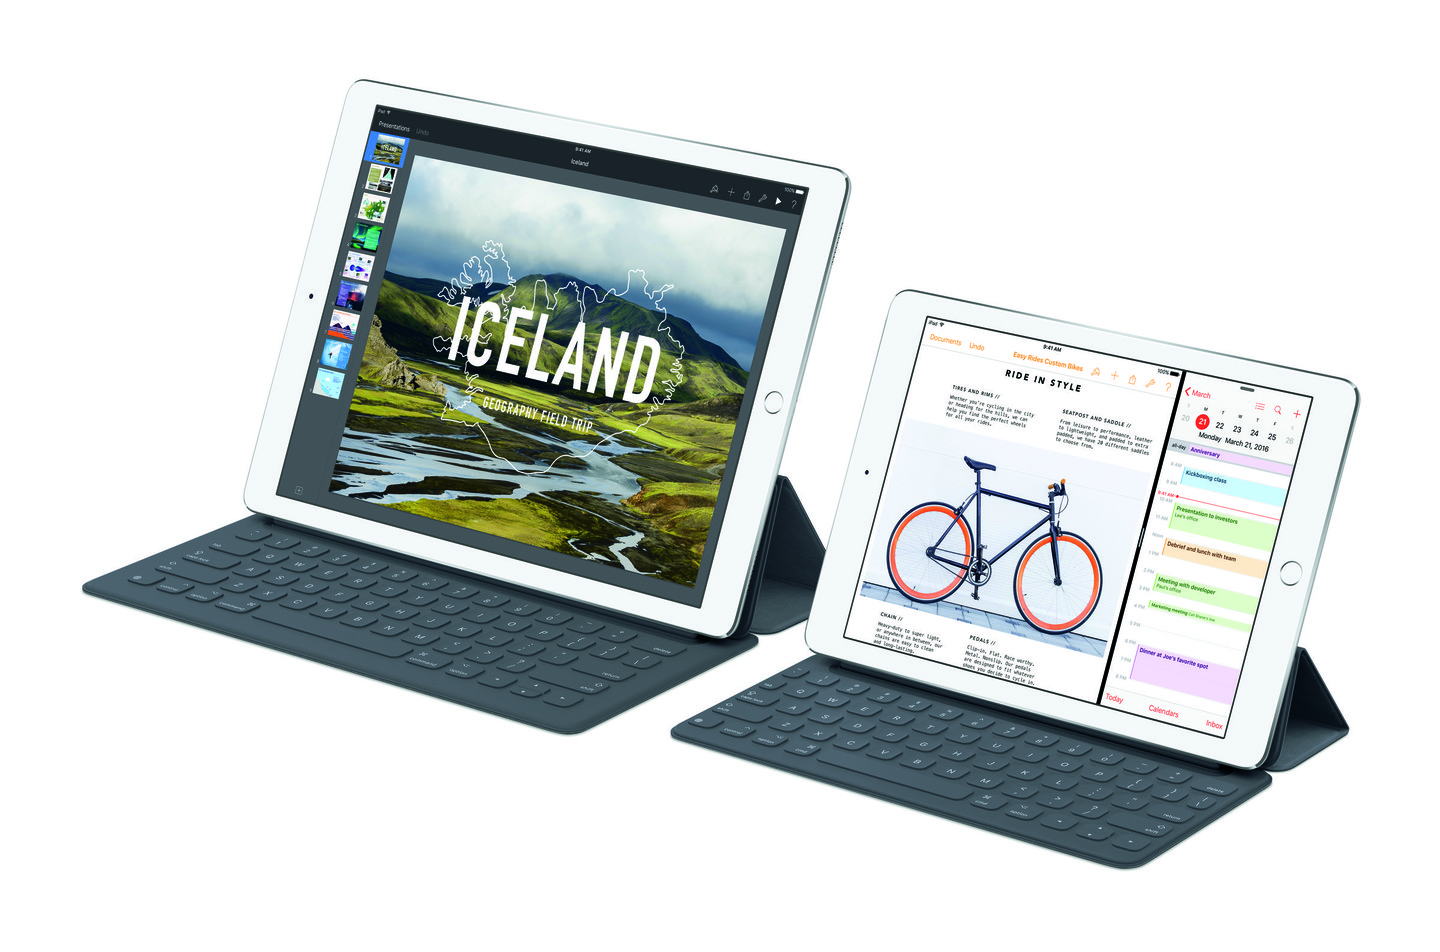 Save $60 on Apple's Smart Keyboard for the 12.9-inch iPad Pro